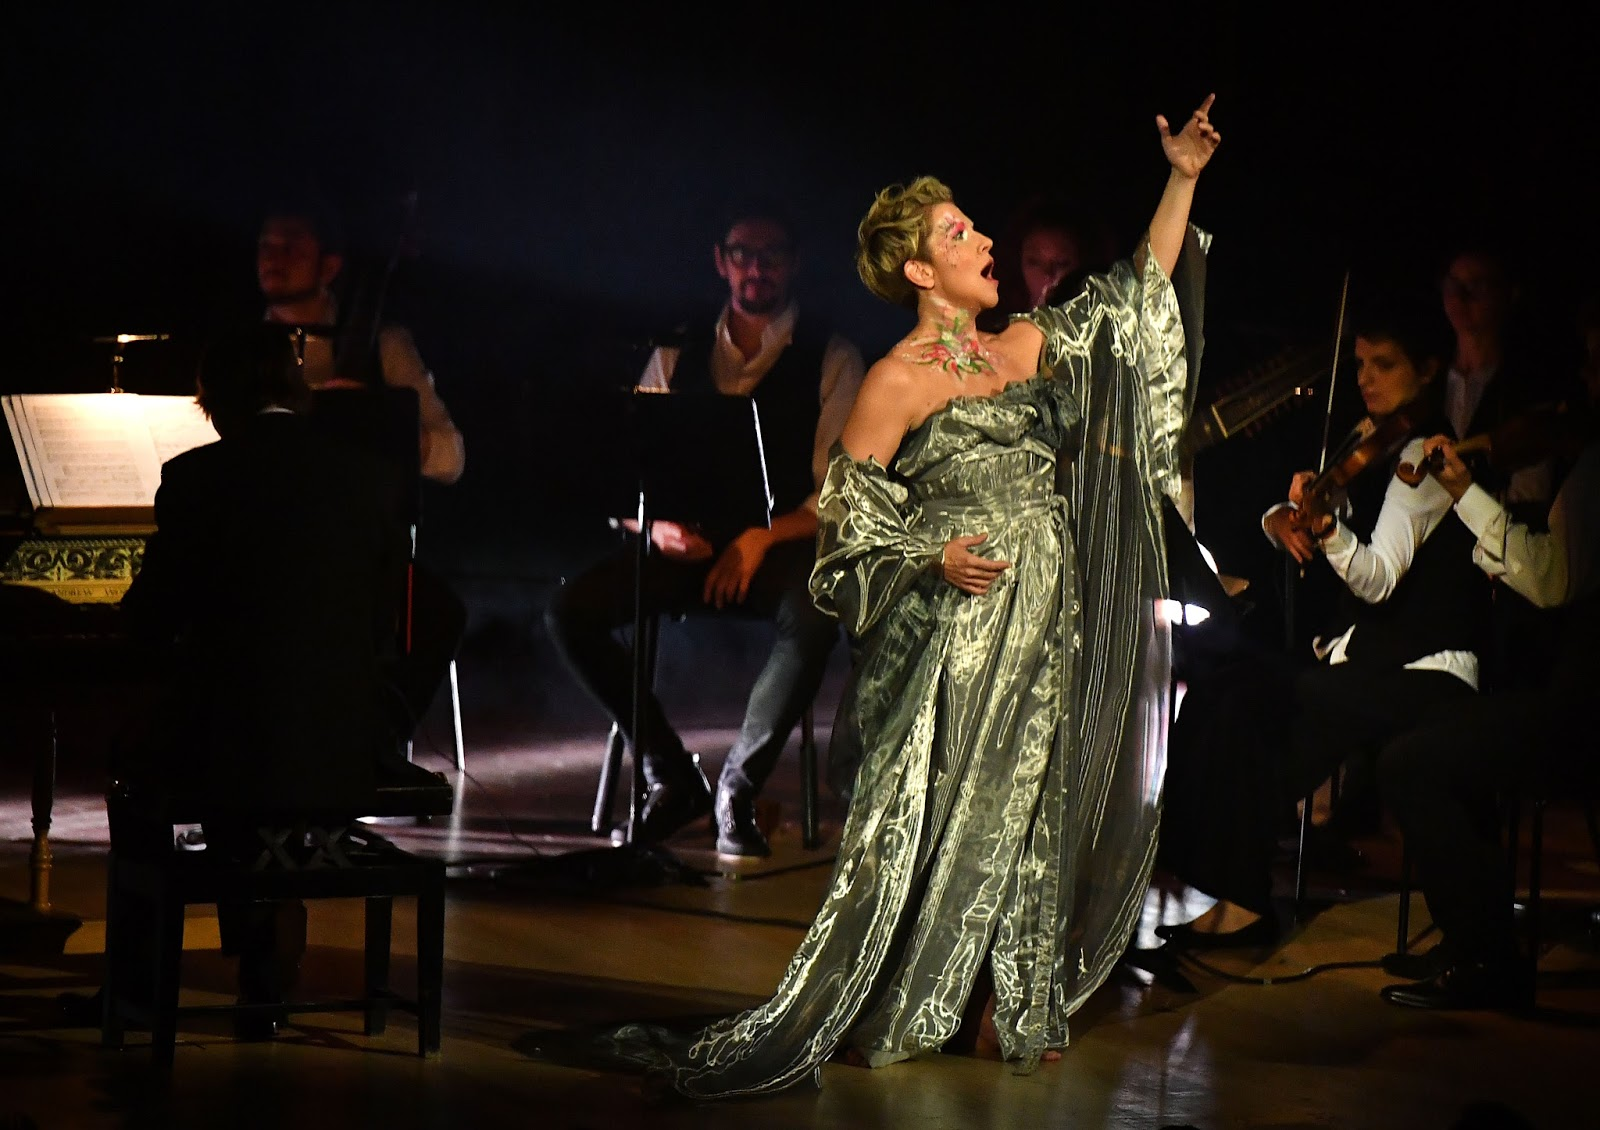 Joyce DiDonato in Berlin: A harmony through music